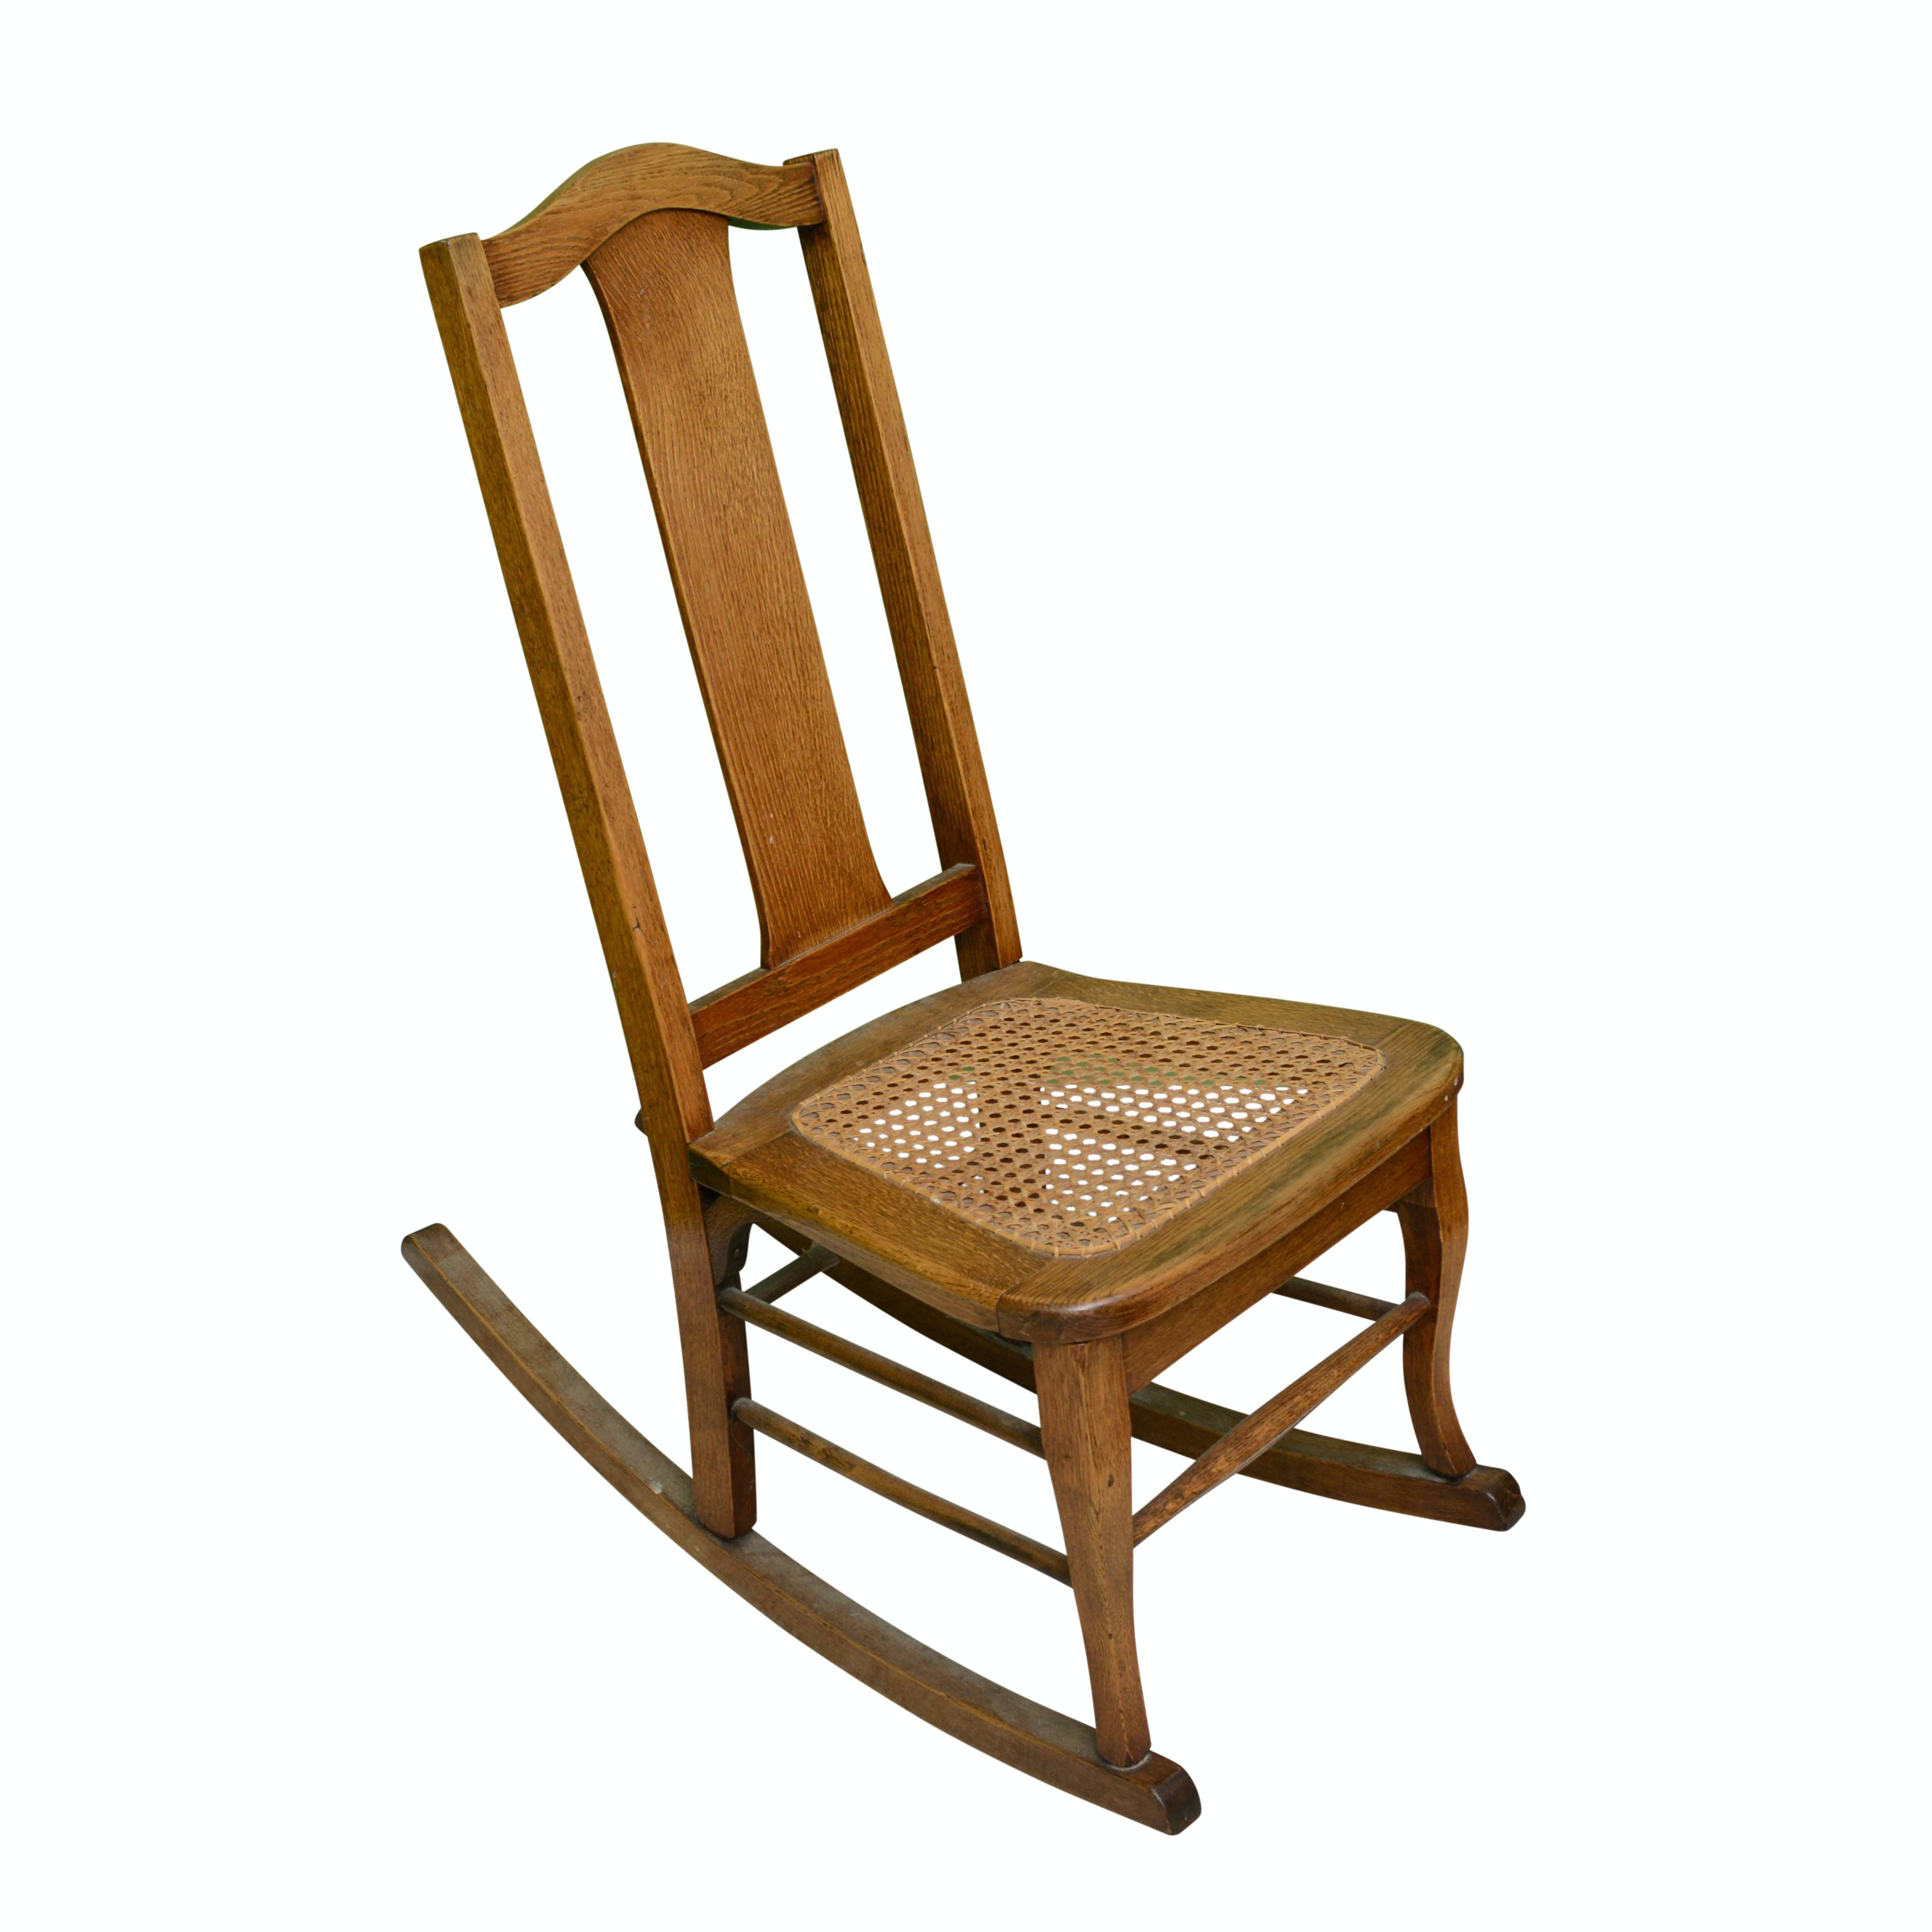 Vintage Children's Oak and Caned Seat Rocking Chair